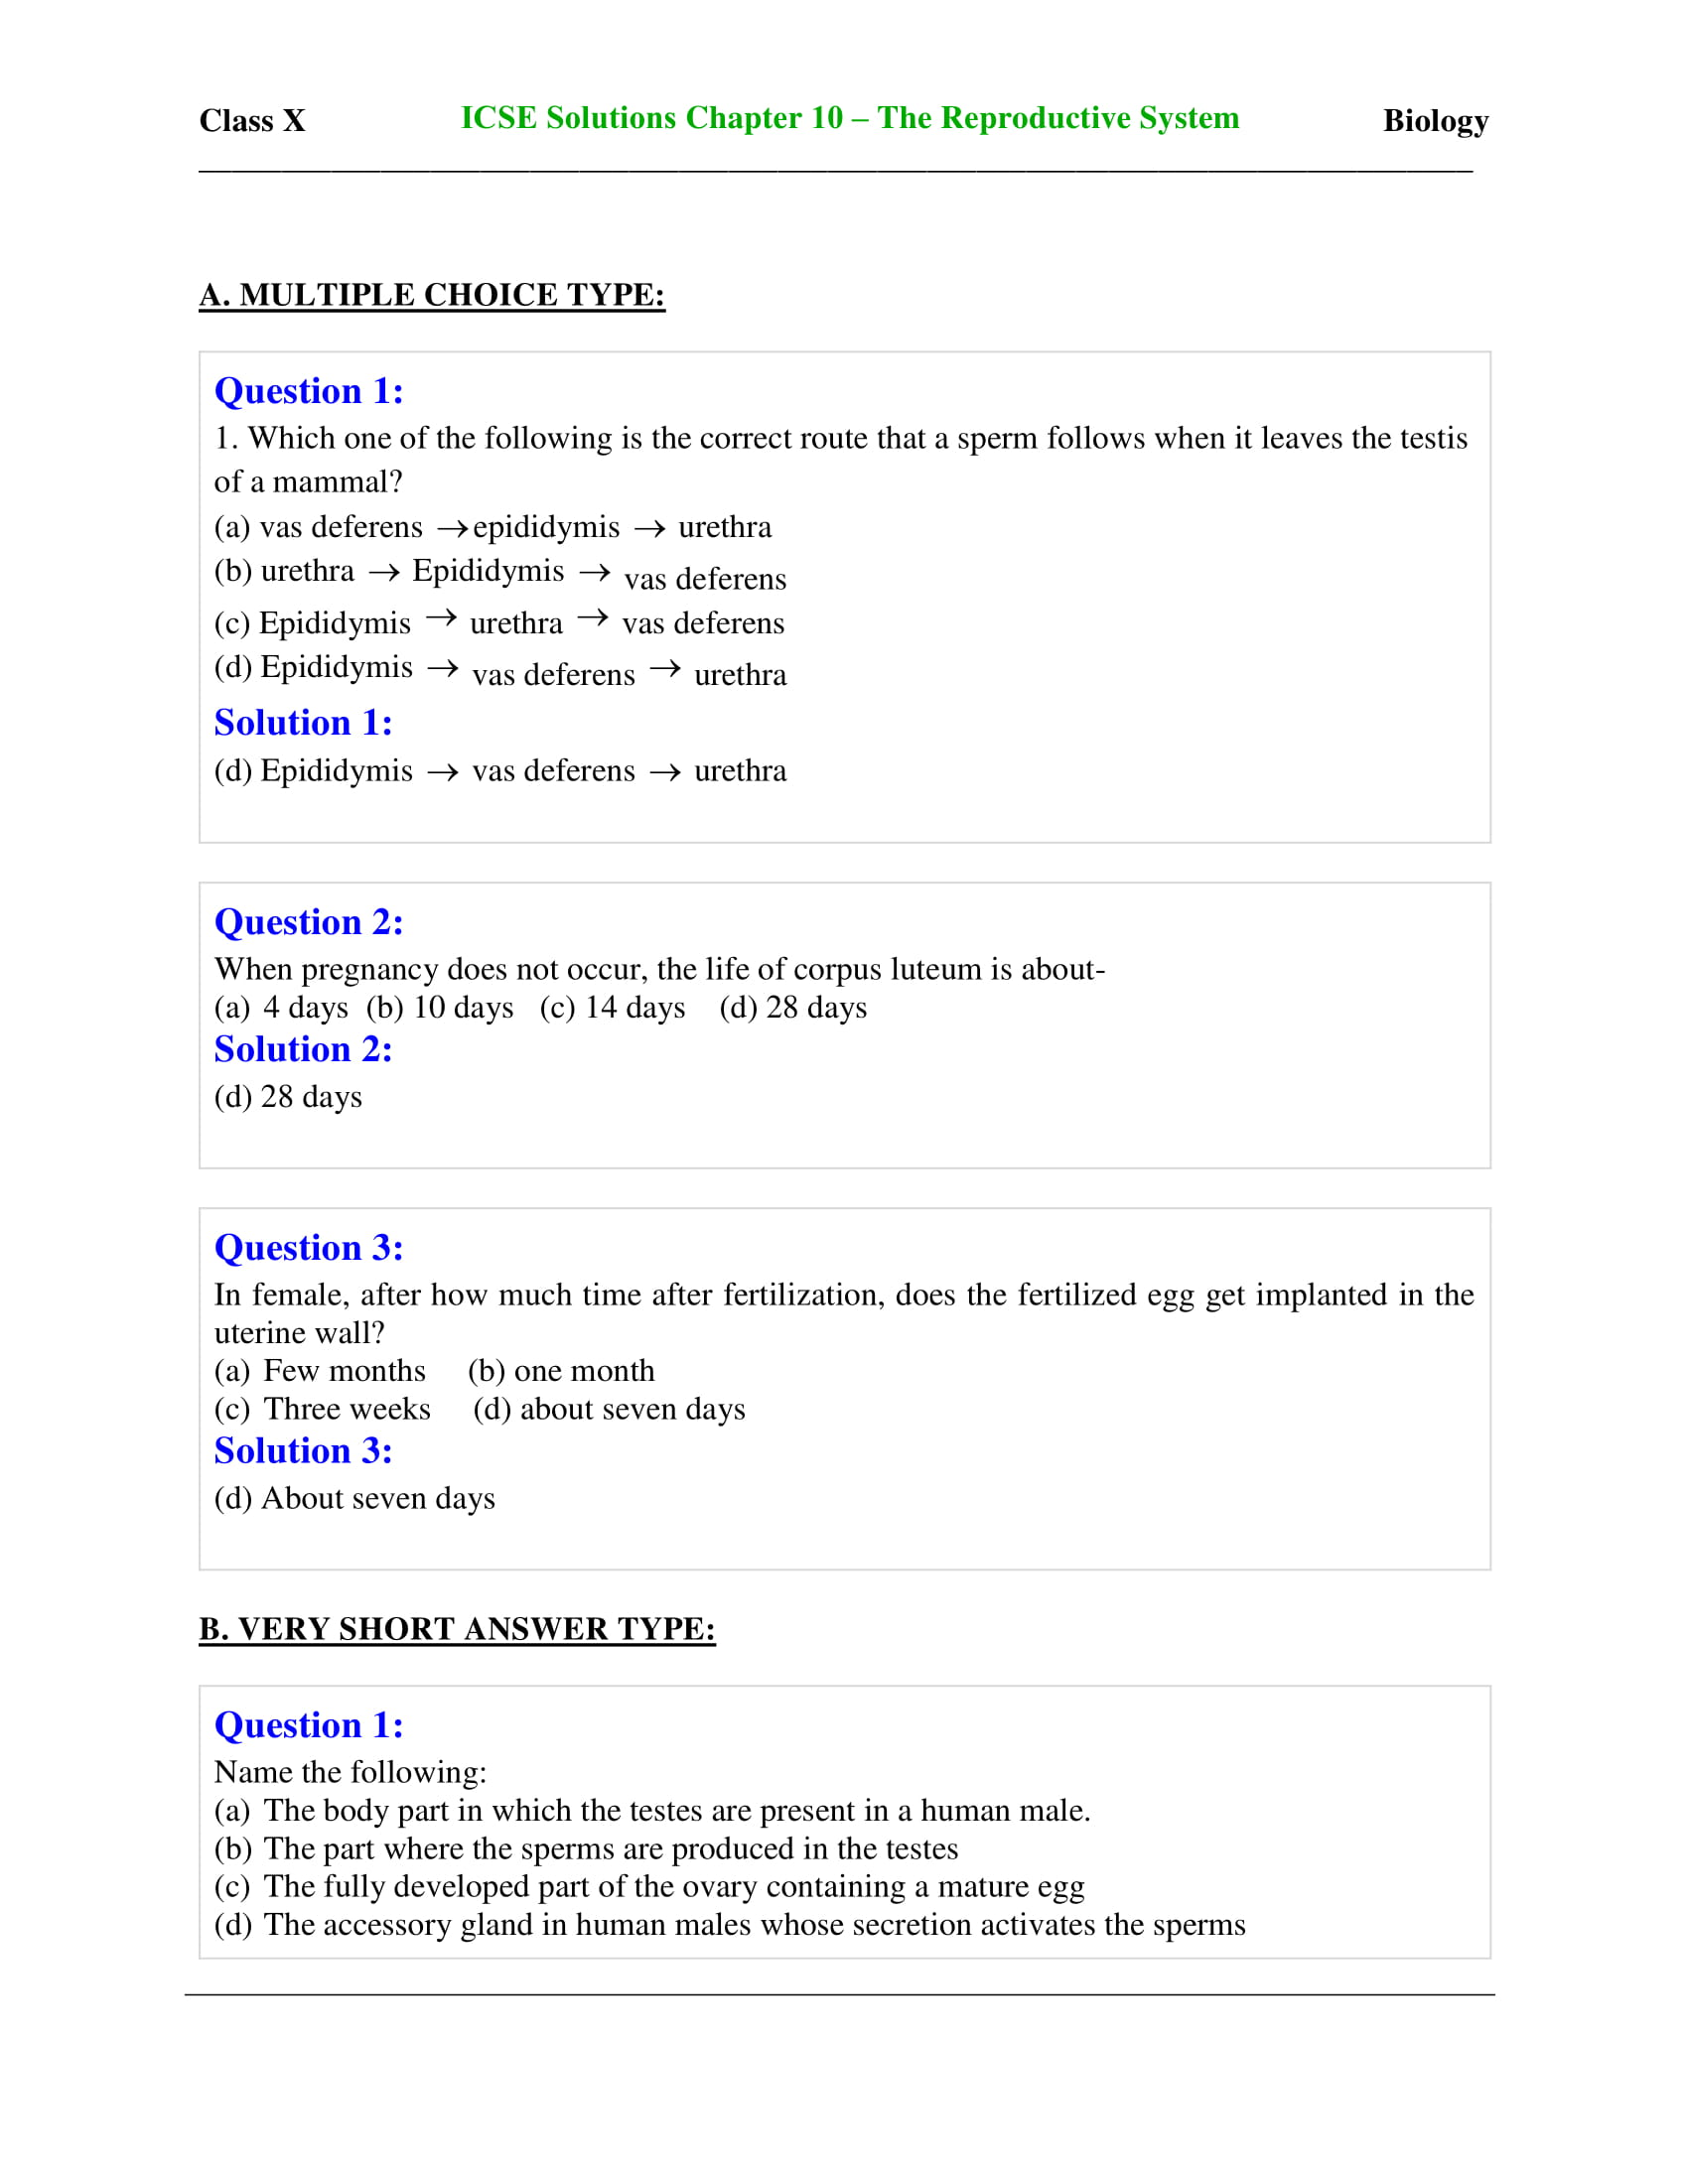 icse-selina-biology-solutions-class-10-chapter-10-the-reproductive-system-01